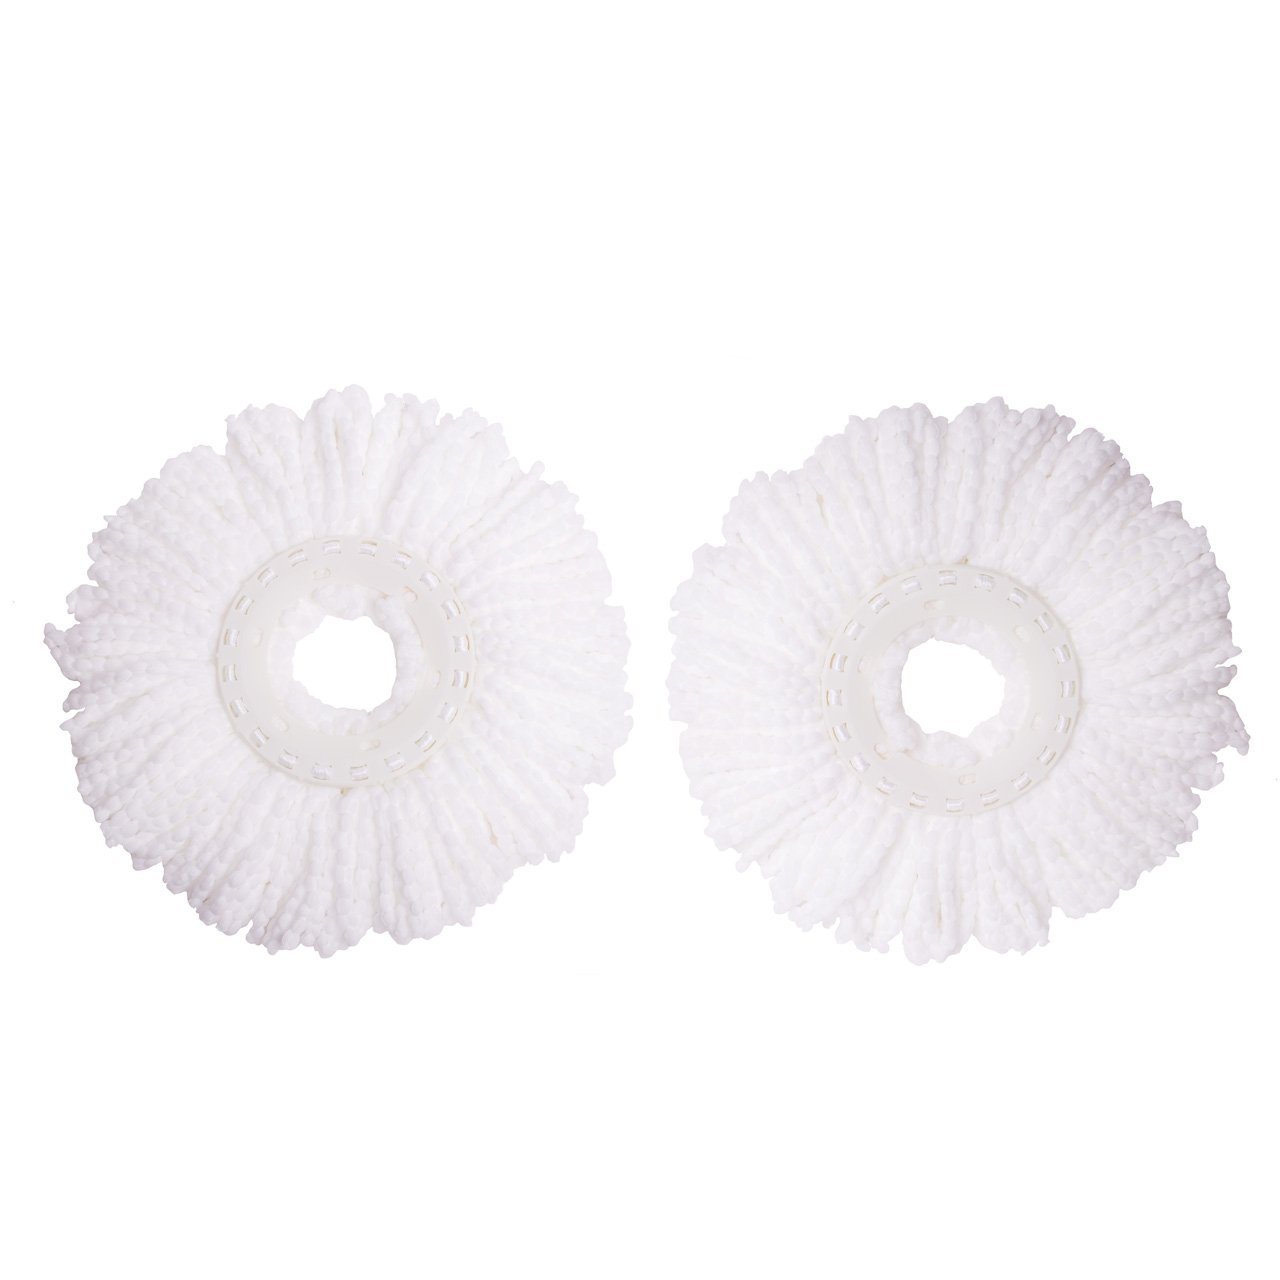 Microfiber Spin Mop Replacement Mop Head by Mopnado (2 Pack) Refill SYNCHKG065638